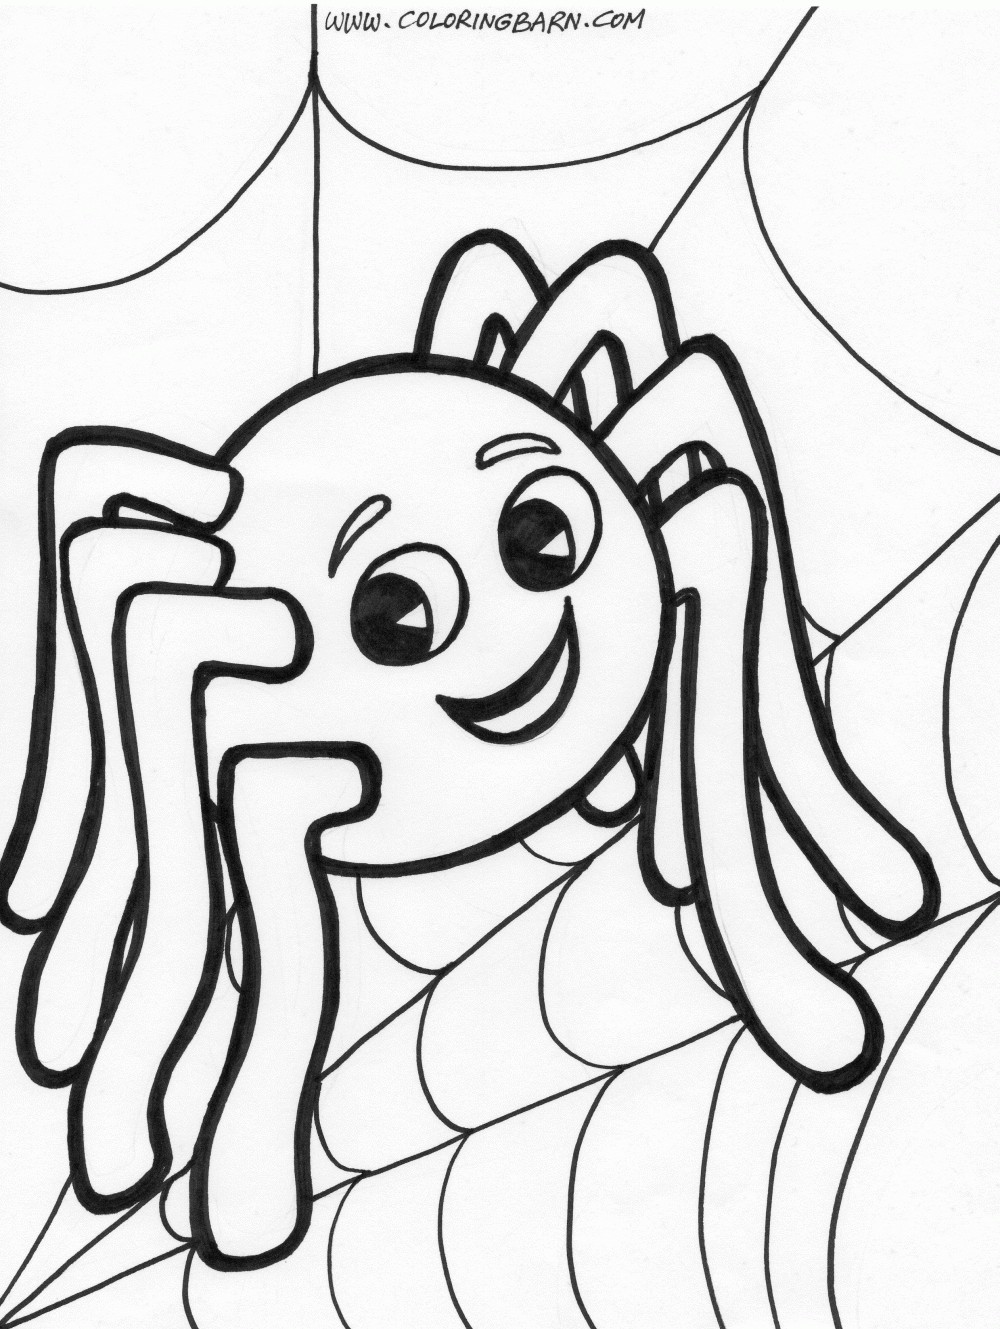 fun coloring pictures summer fun coloring pages to download and print for free fun coloring pictures